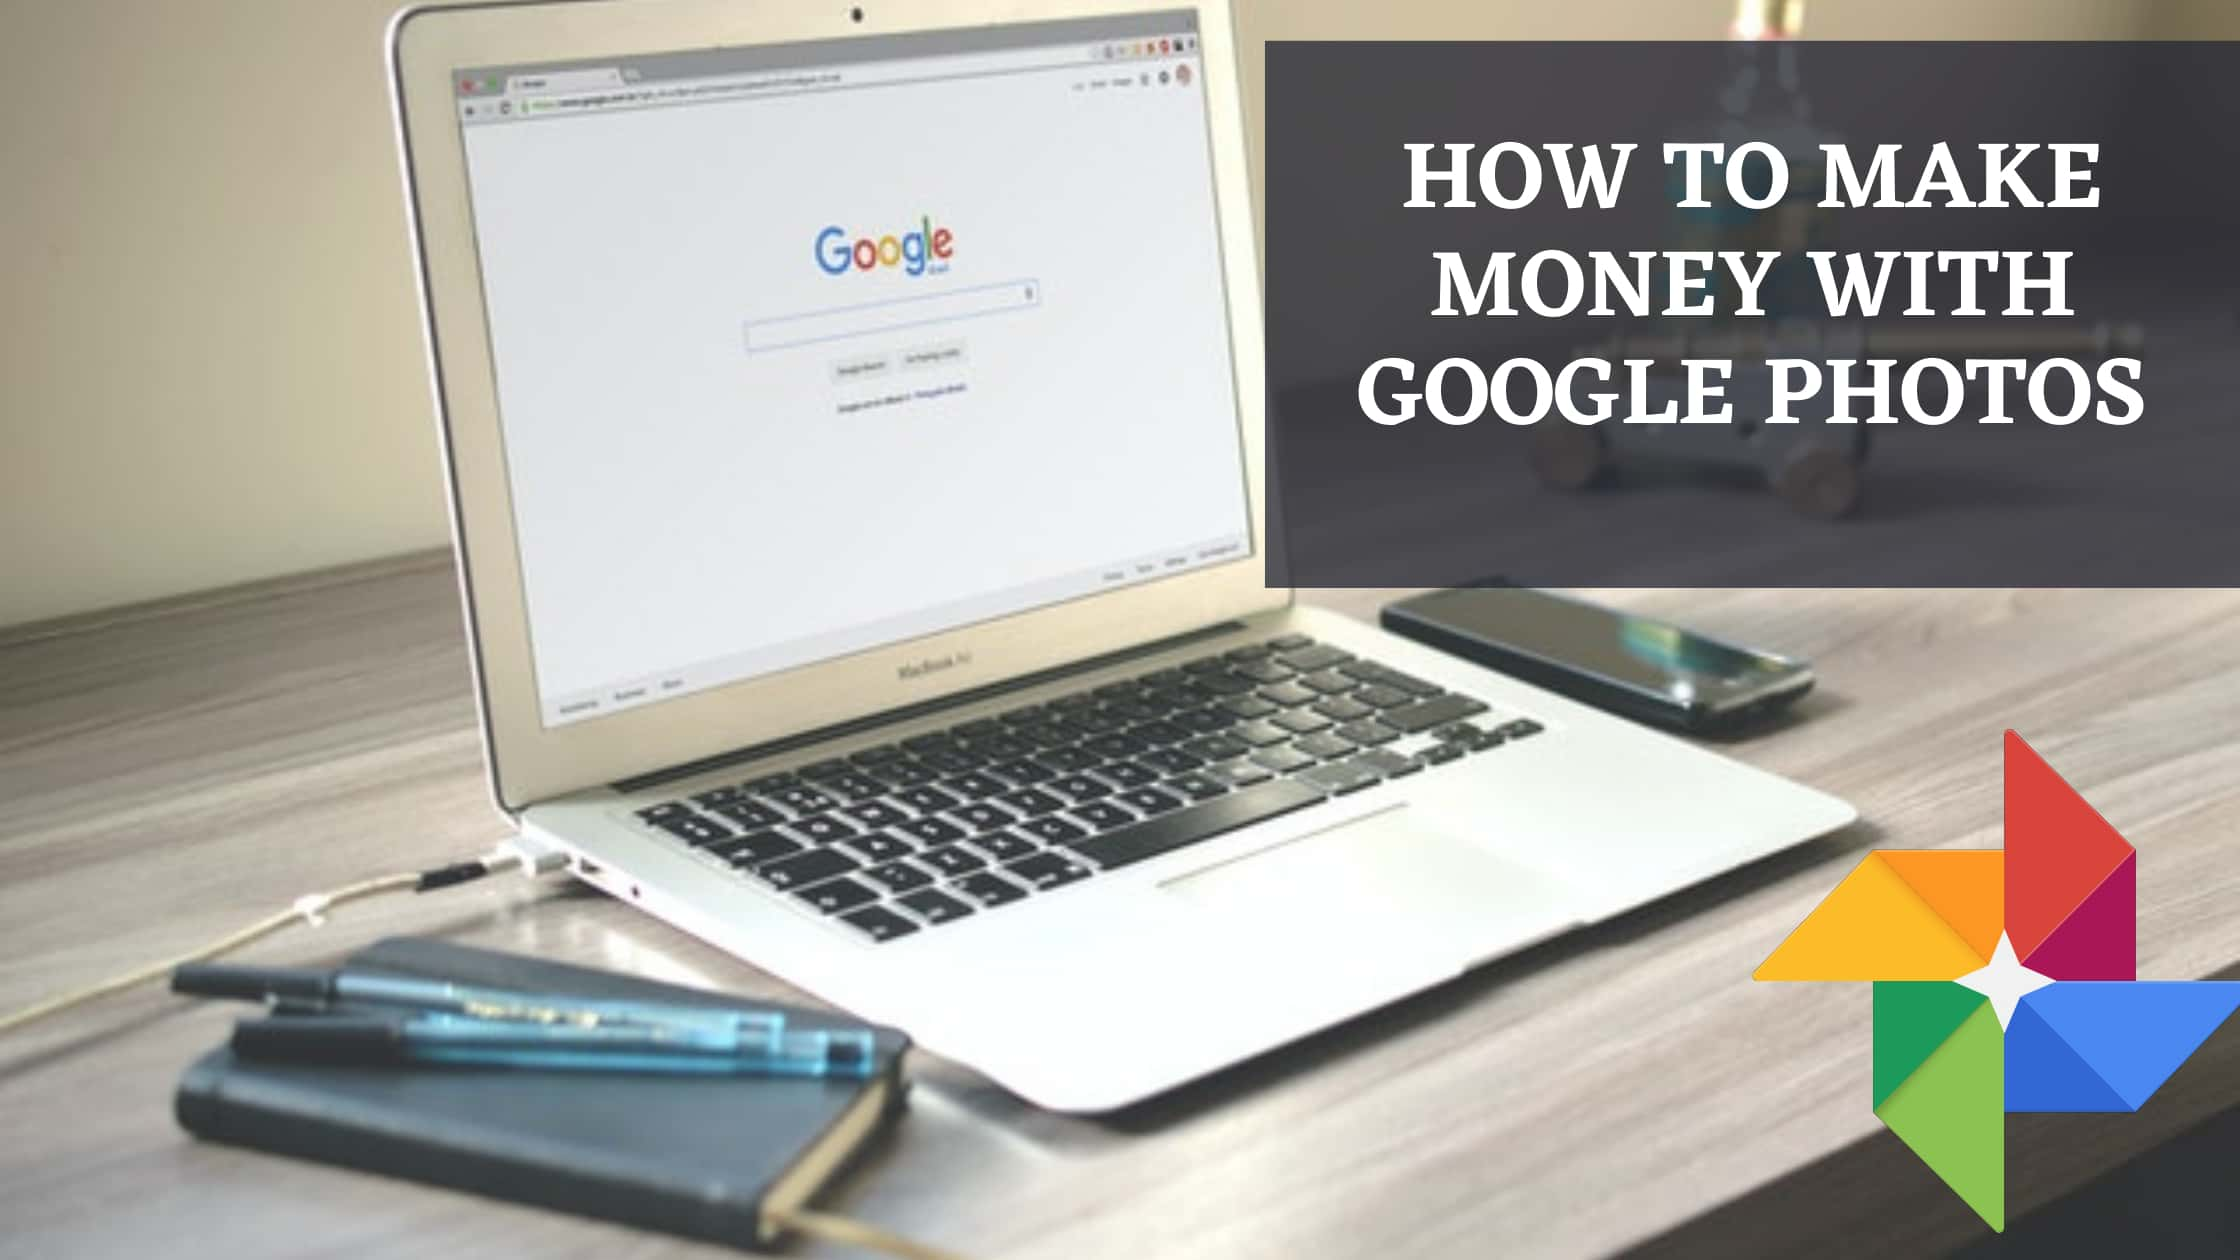 How to make money with Google photos